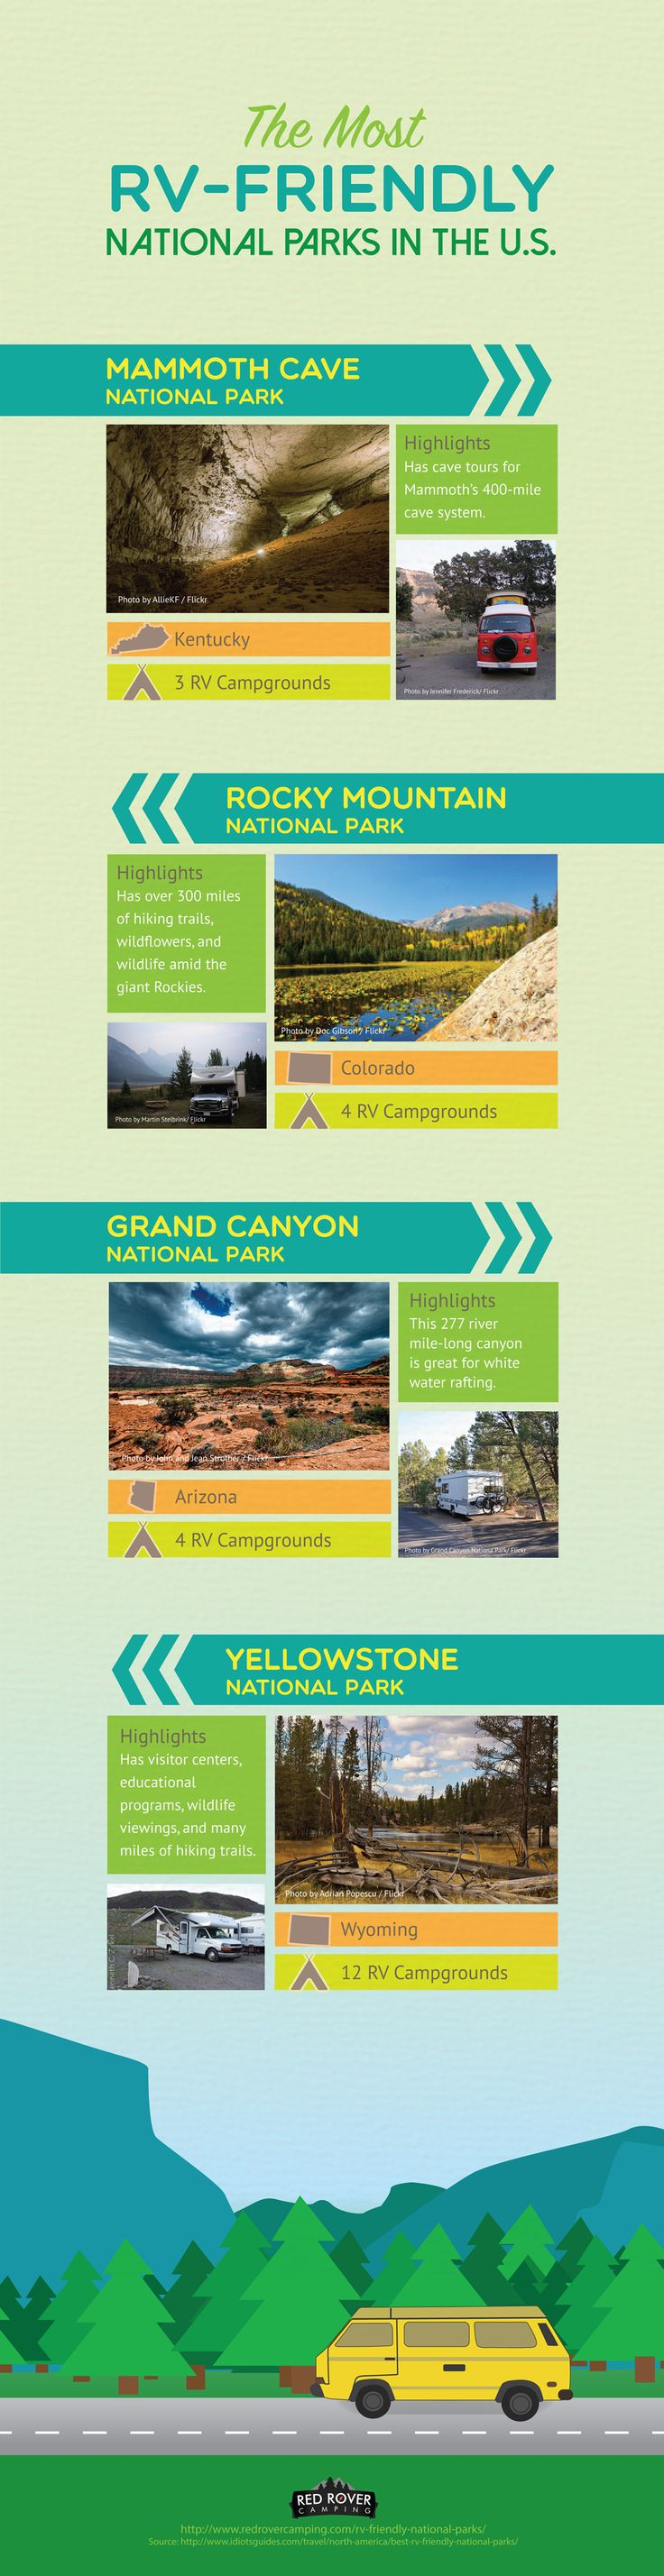 Here are some of the friendliest national parks in the United States for RVers.